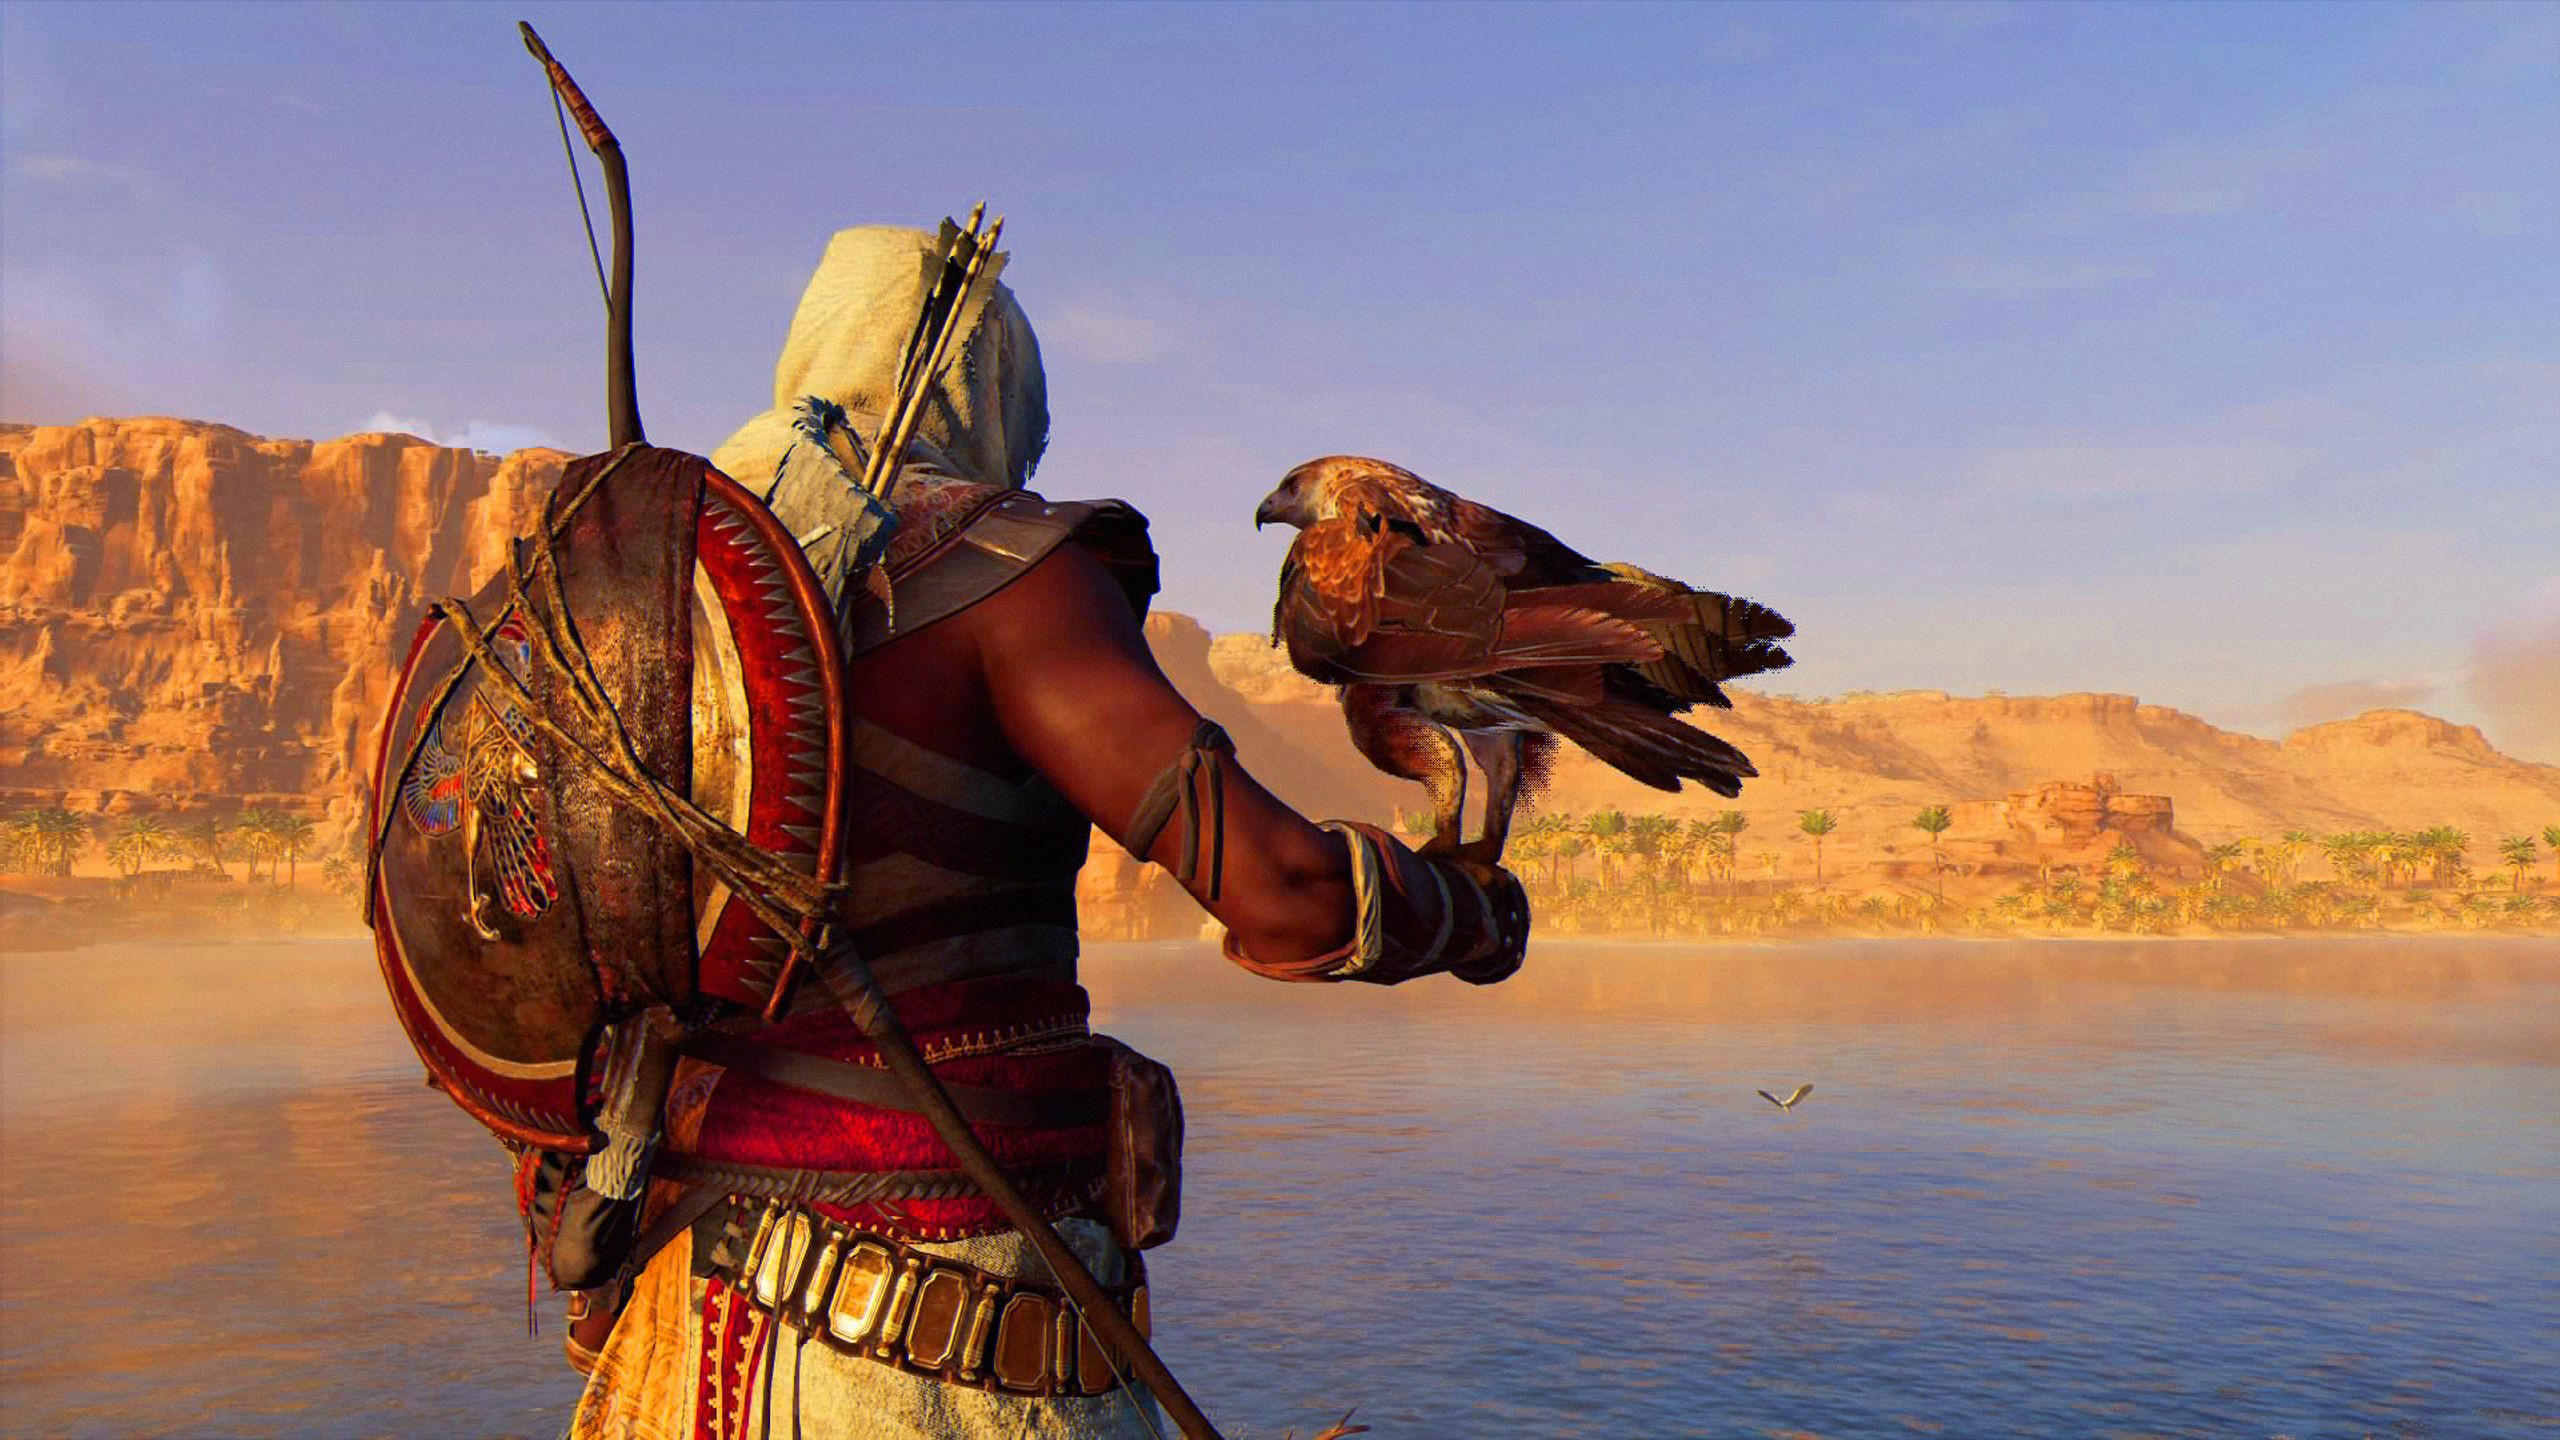 Assassin 39 s creed origins wallpapers top free assassin 39 s creed origins backgrounds - Assasins wallpaper ...